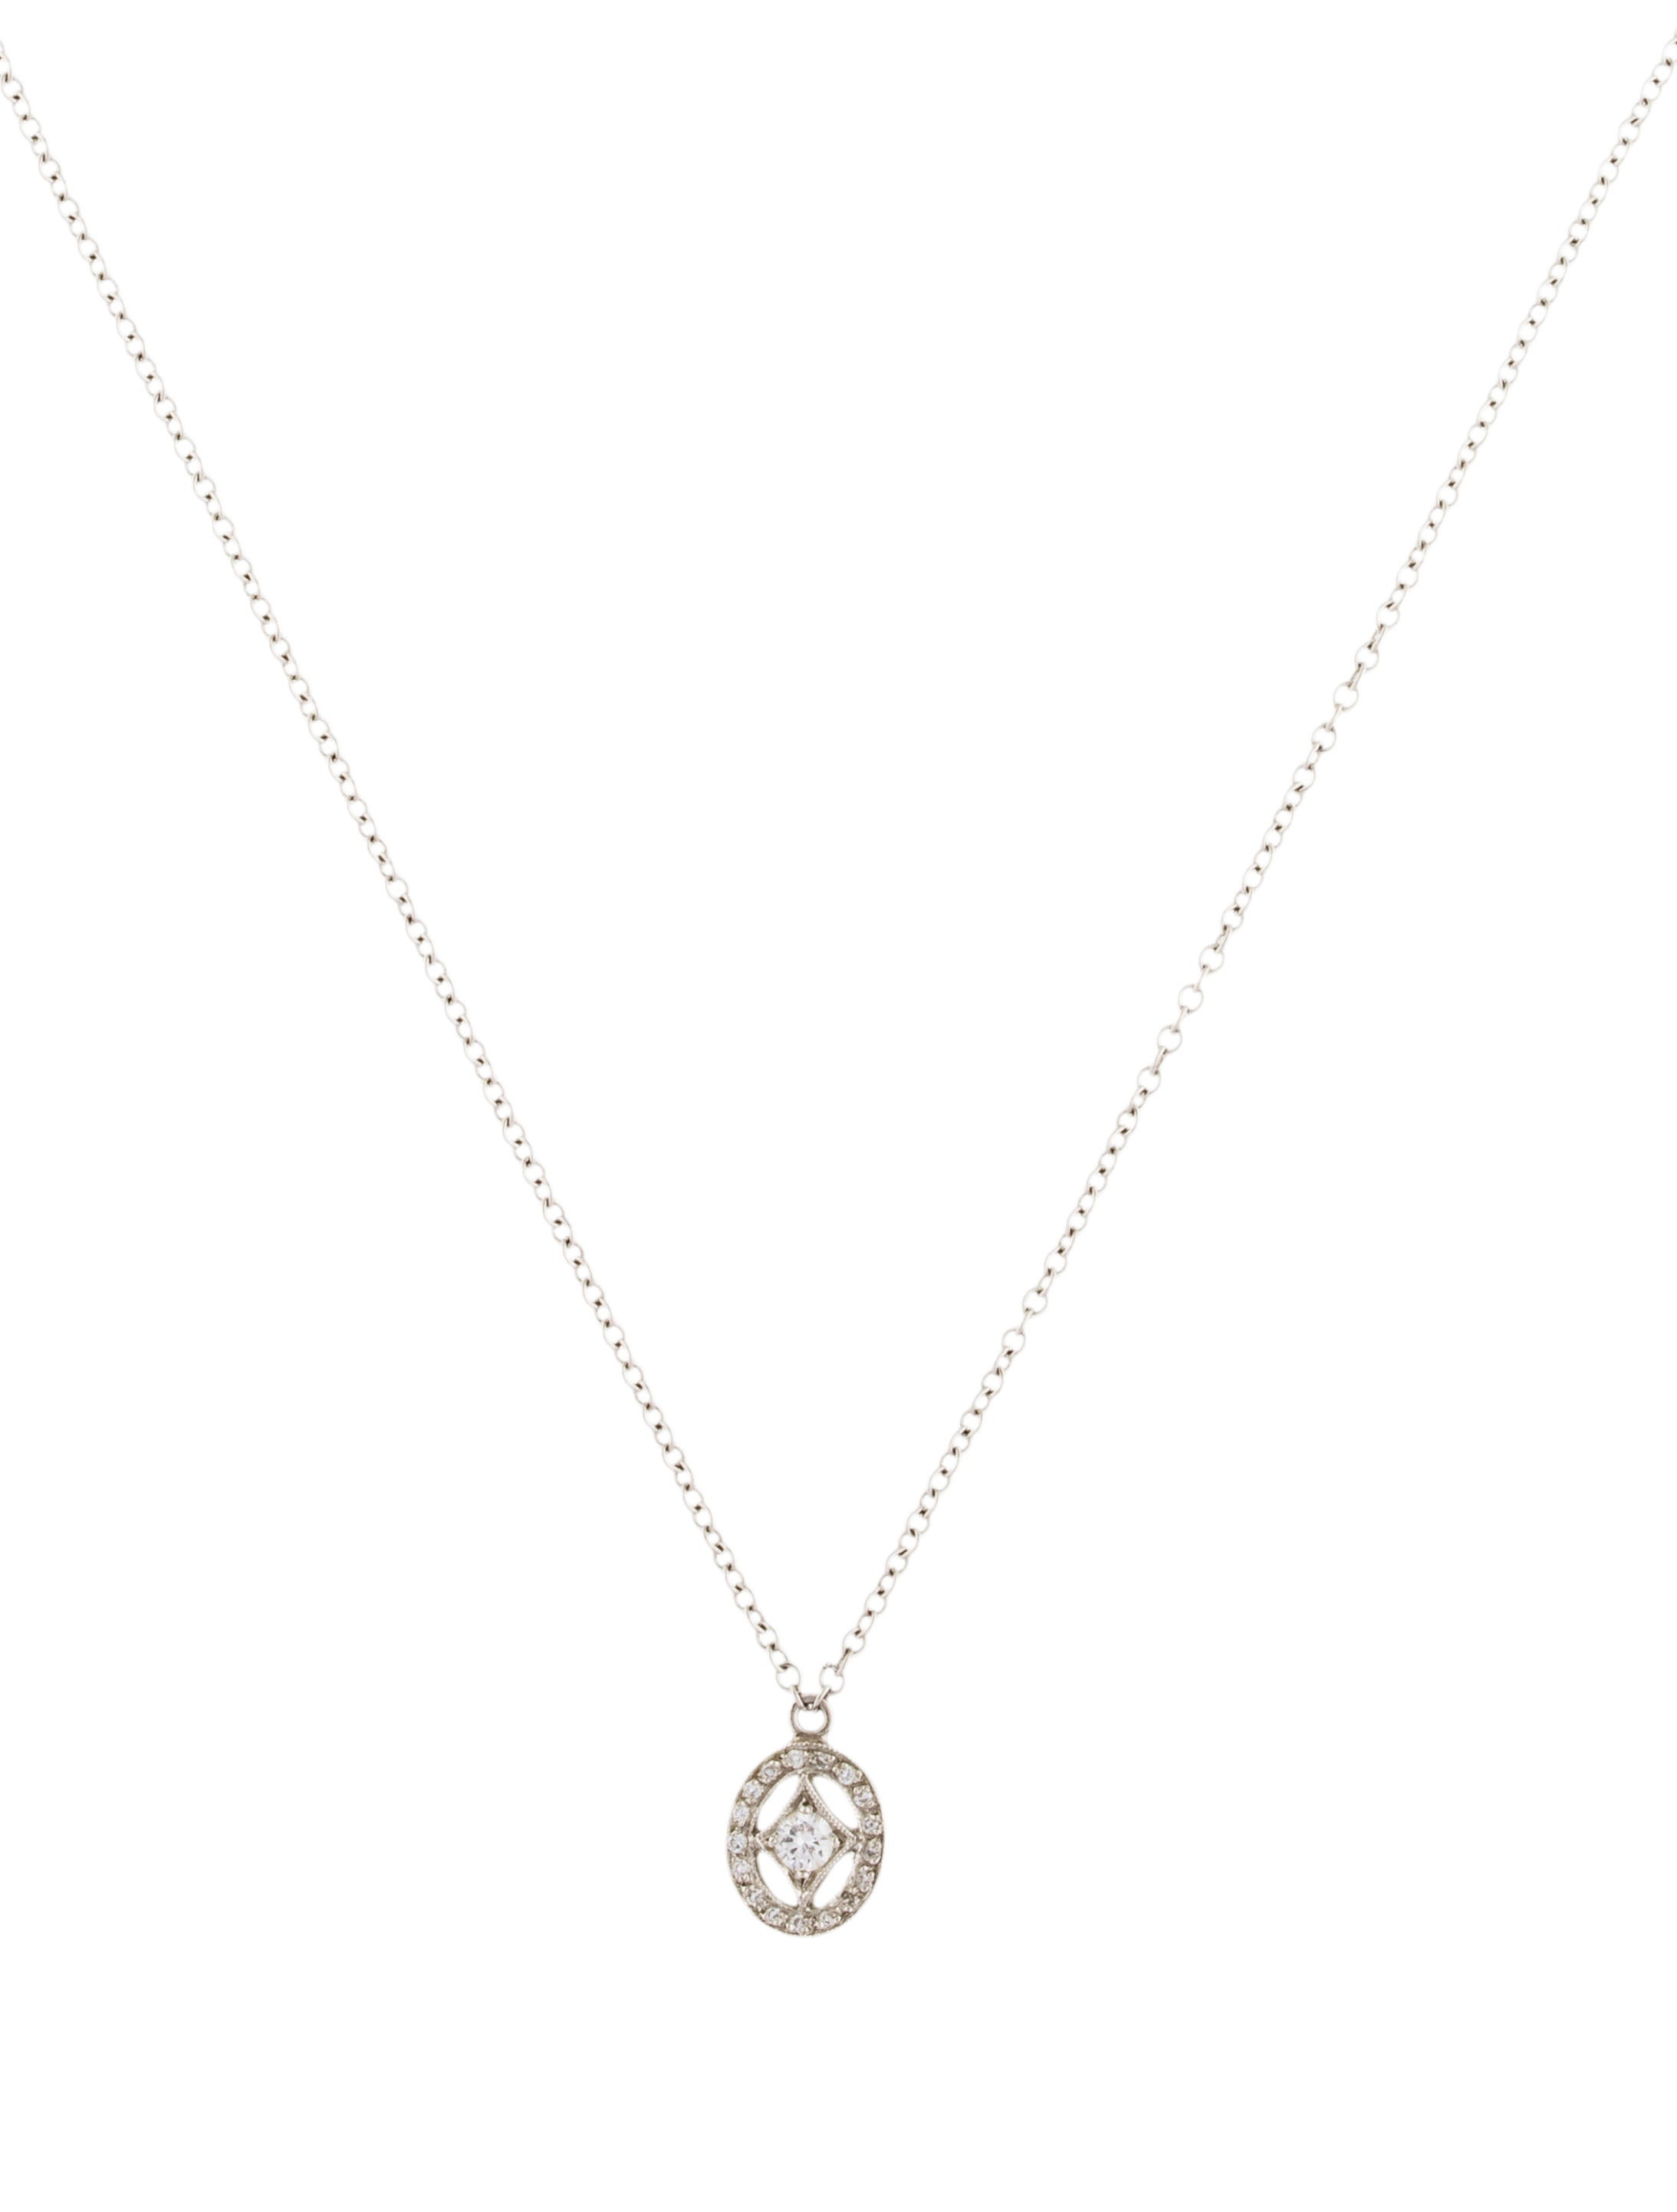 edwardian floral pendant diamond necklace platinum